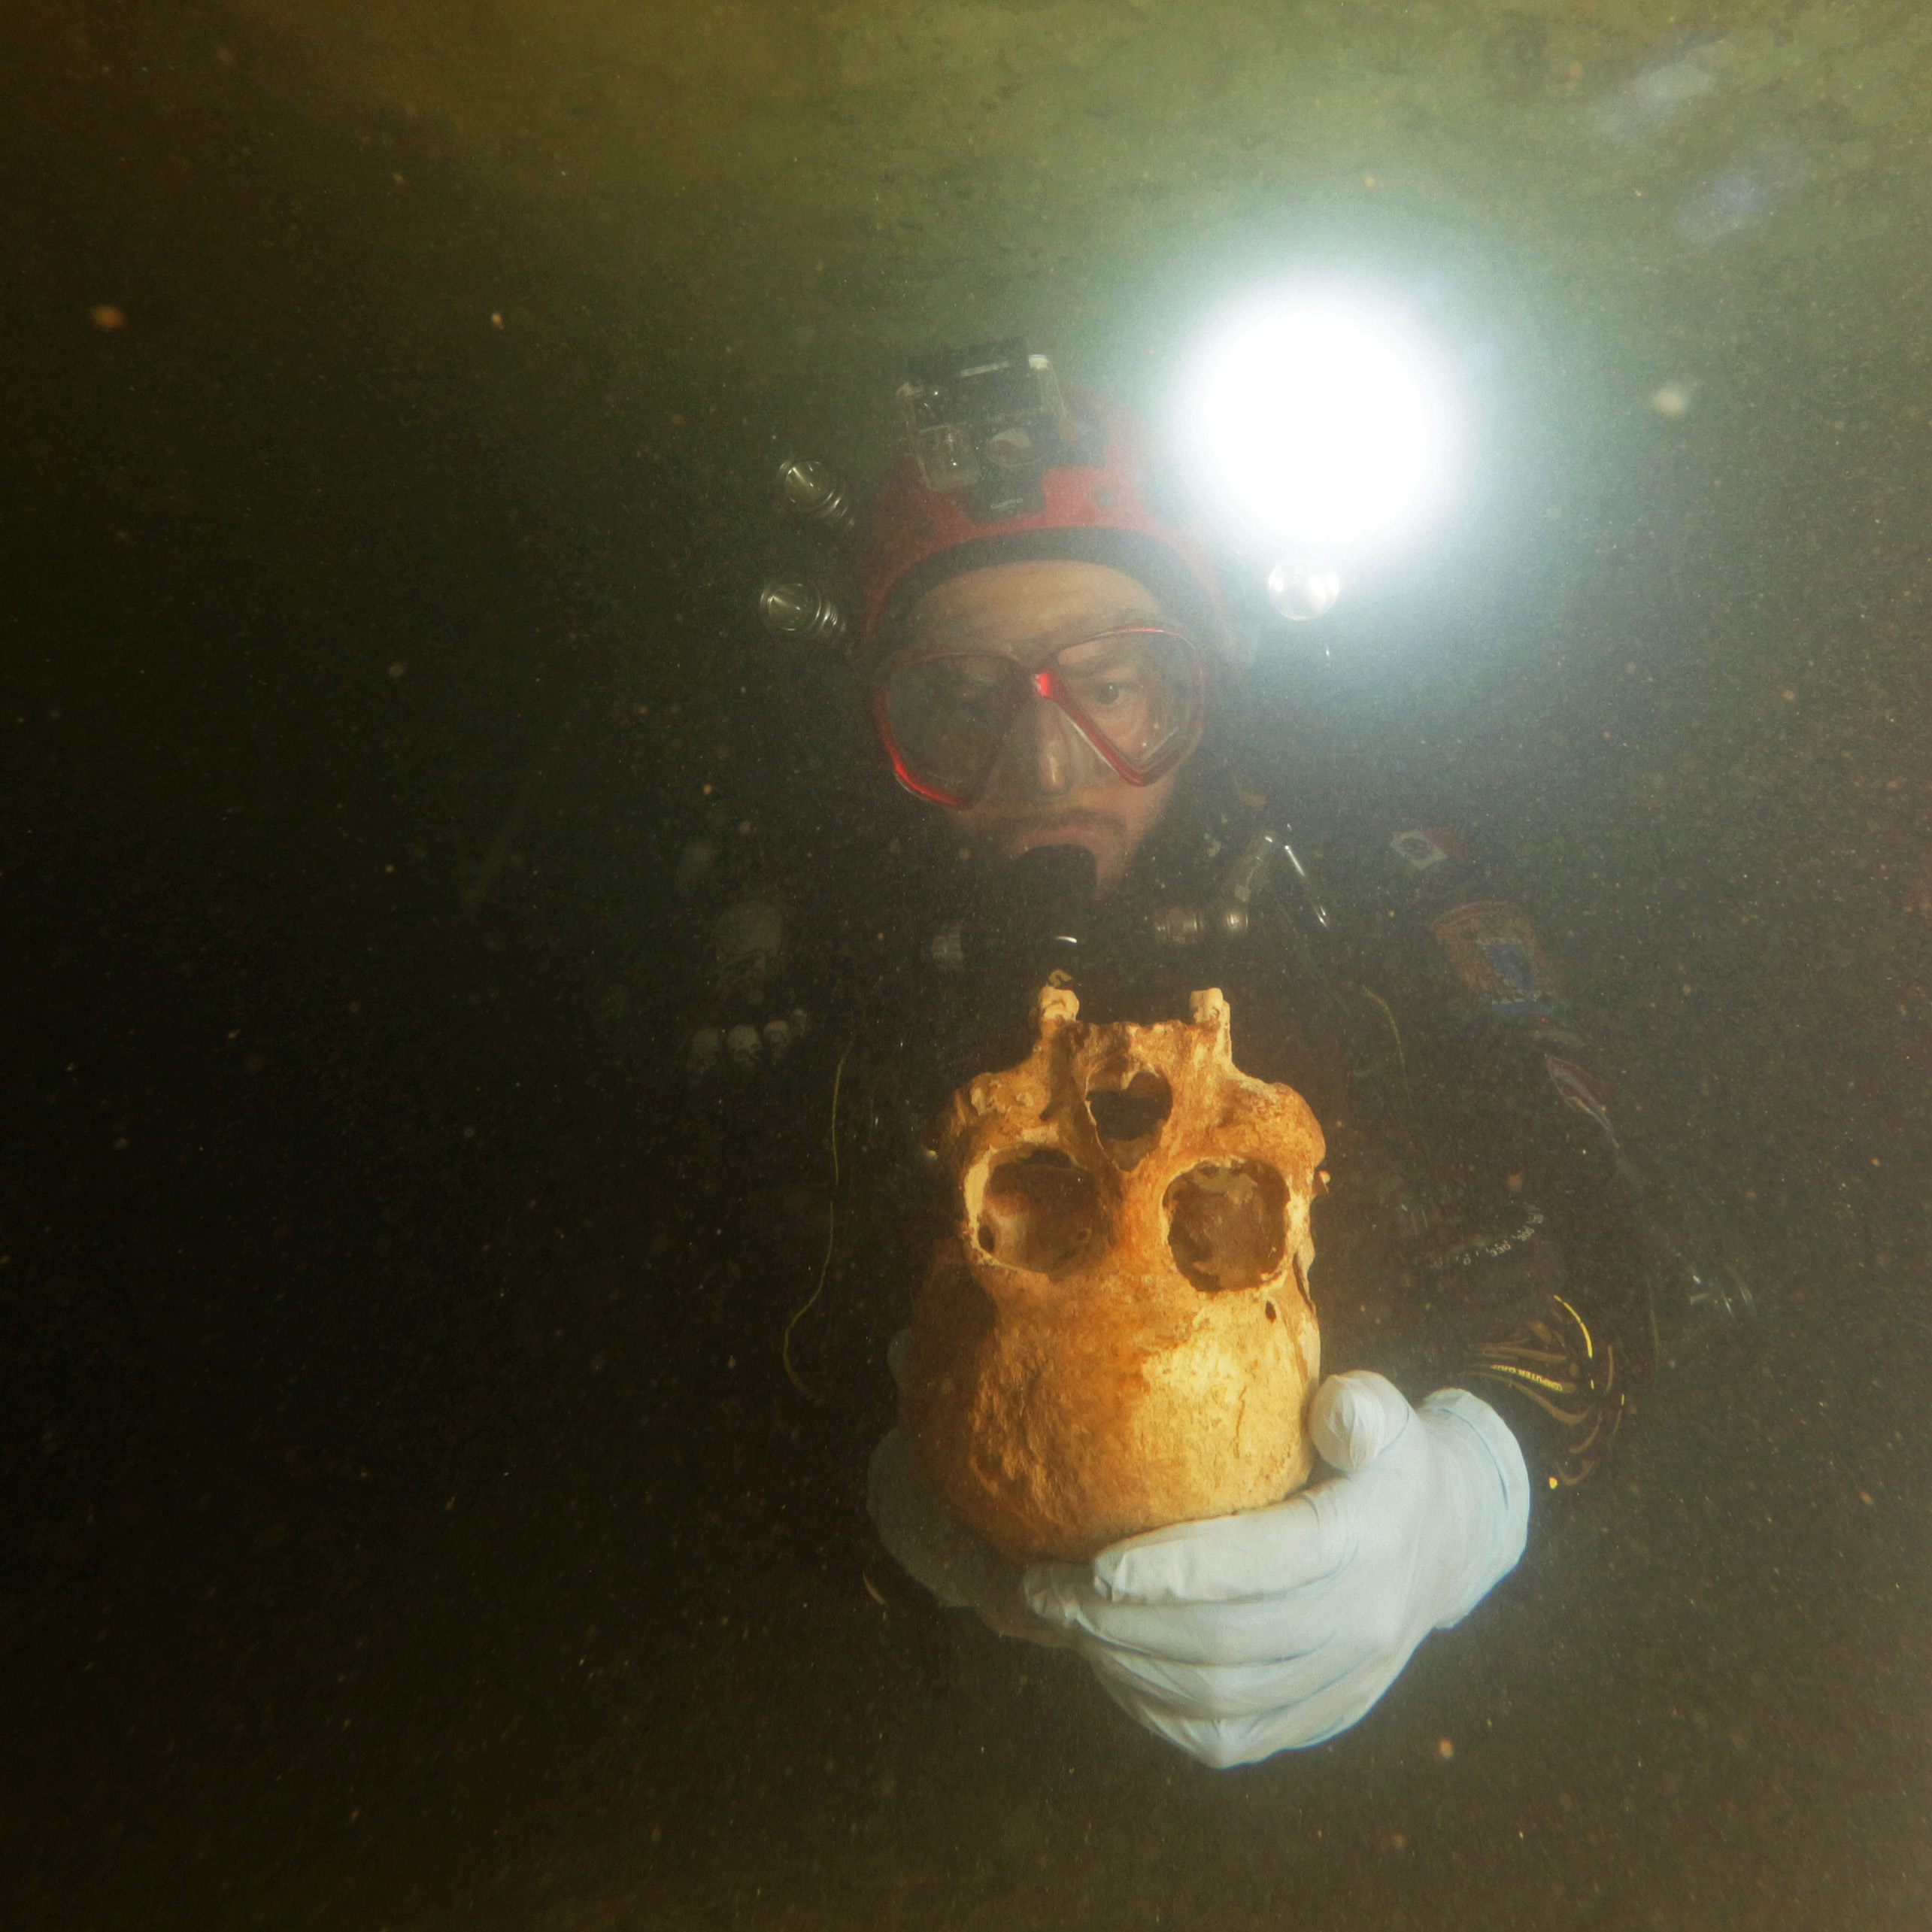 The Chan Hol 3 skeleton was excavated from the Chan Hol underwater cave.